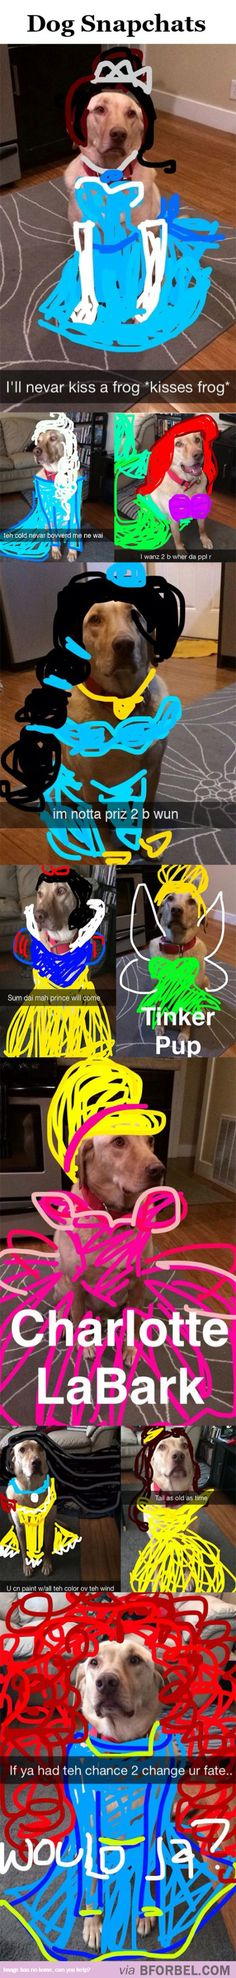 The last one lol! Funny Pictures Of The Day – 75 Pics Disney Love, Disney Magic, Funny Disney, Dog Snapchats, Funny Animals, Cute Animals, 4 Panel Life, Nerd, Have A Laugh